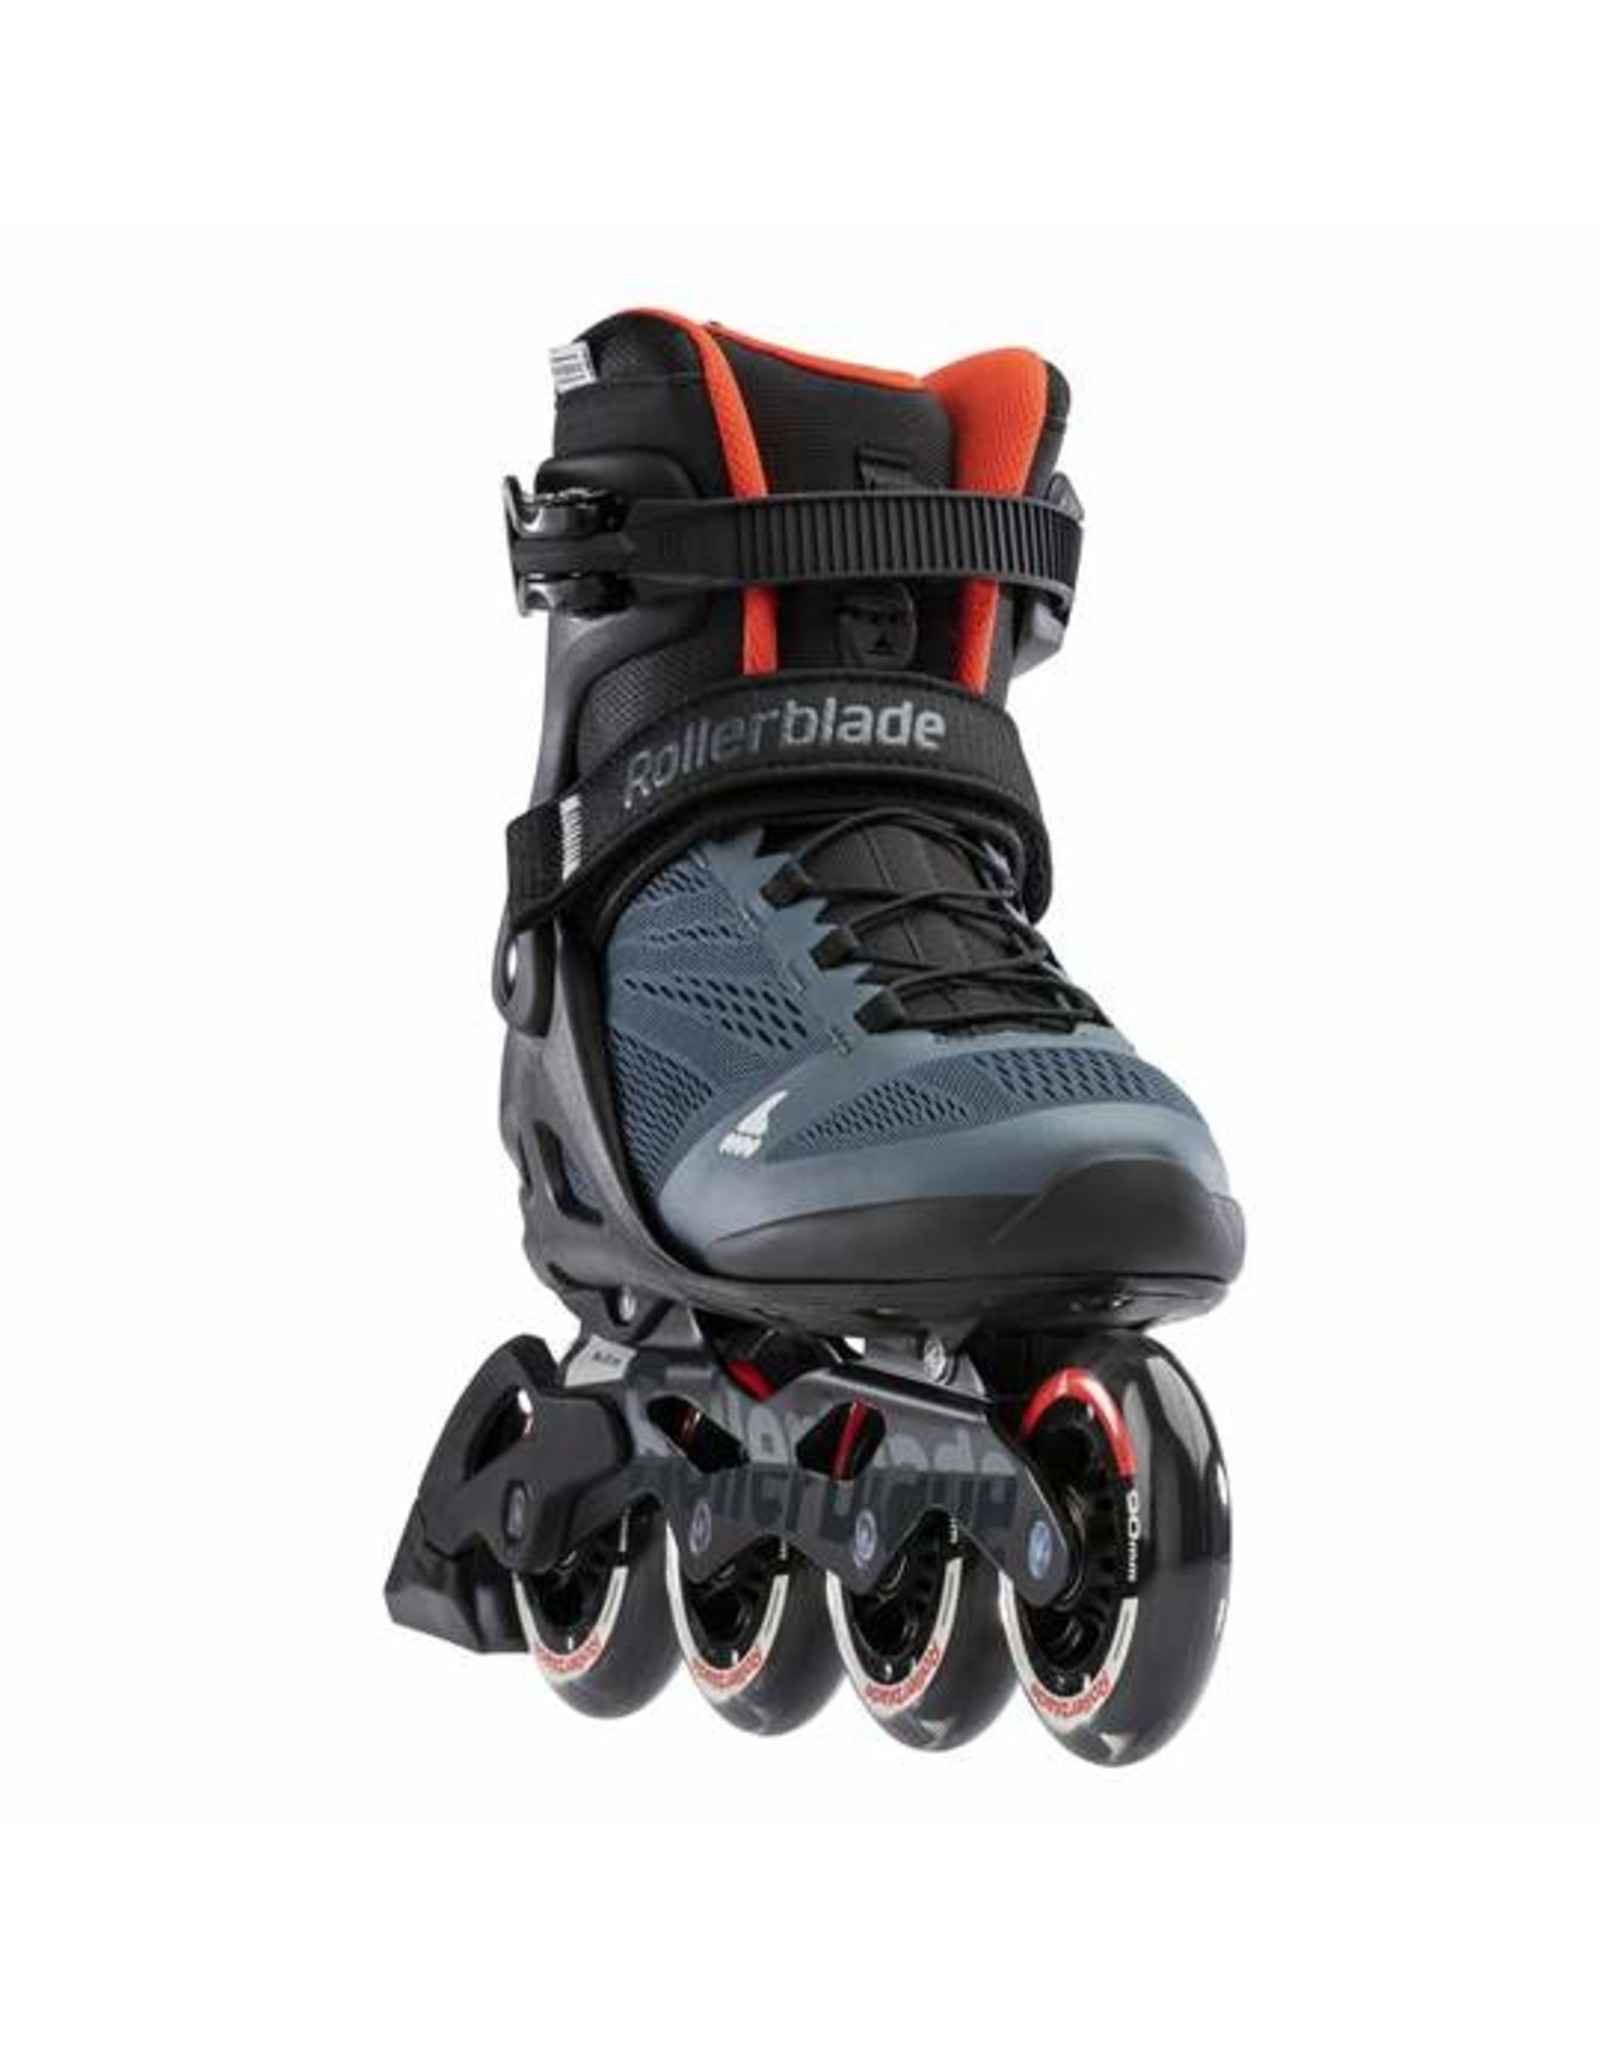 Rollerblade Rollerblade Macroblade 90 Orion Blue/Orange